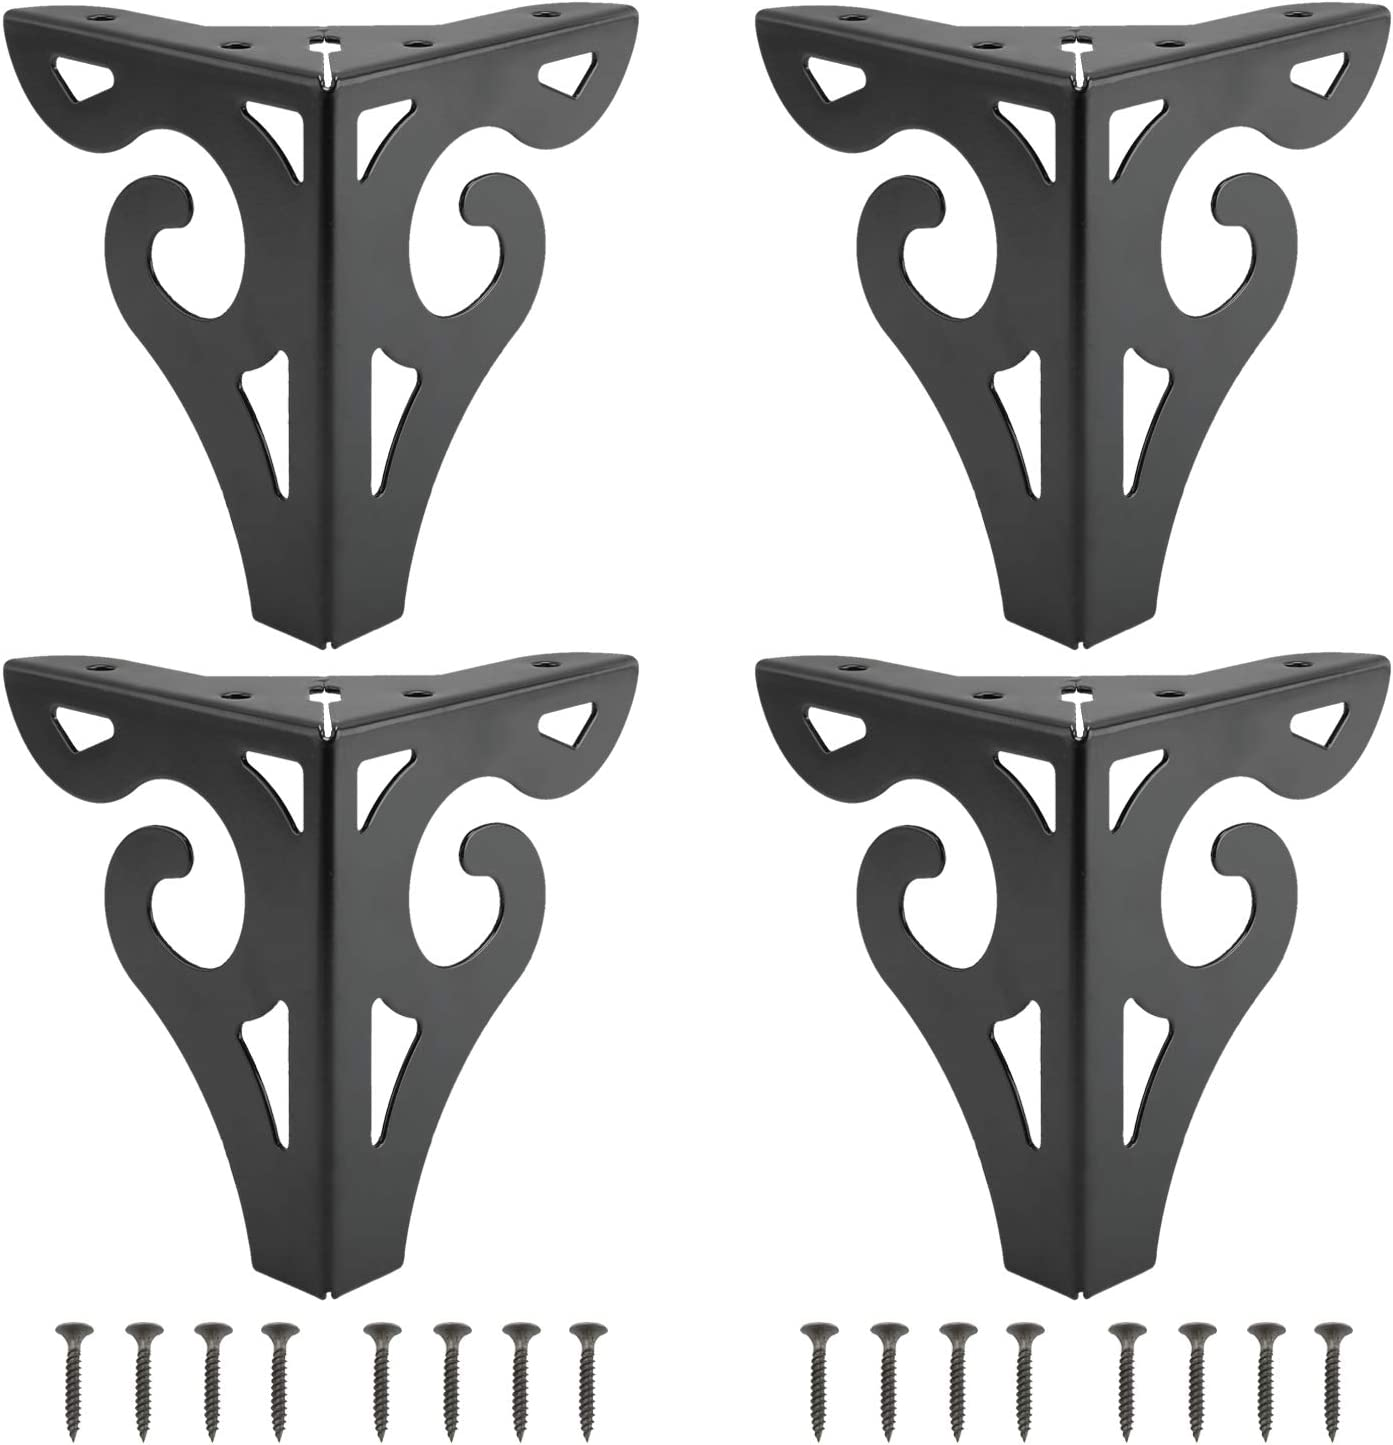 """DasMarine Furniture Legs, 5 inch Height Hollow Out Modern Furniture Sofa Legs Metal Black Finished for Sofa Table Cabinet Cupboard Set of 4 (Height: 5"""", Black)"""